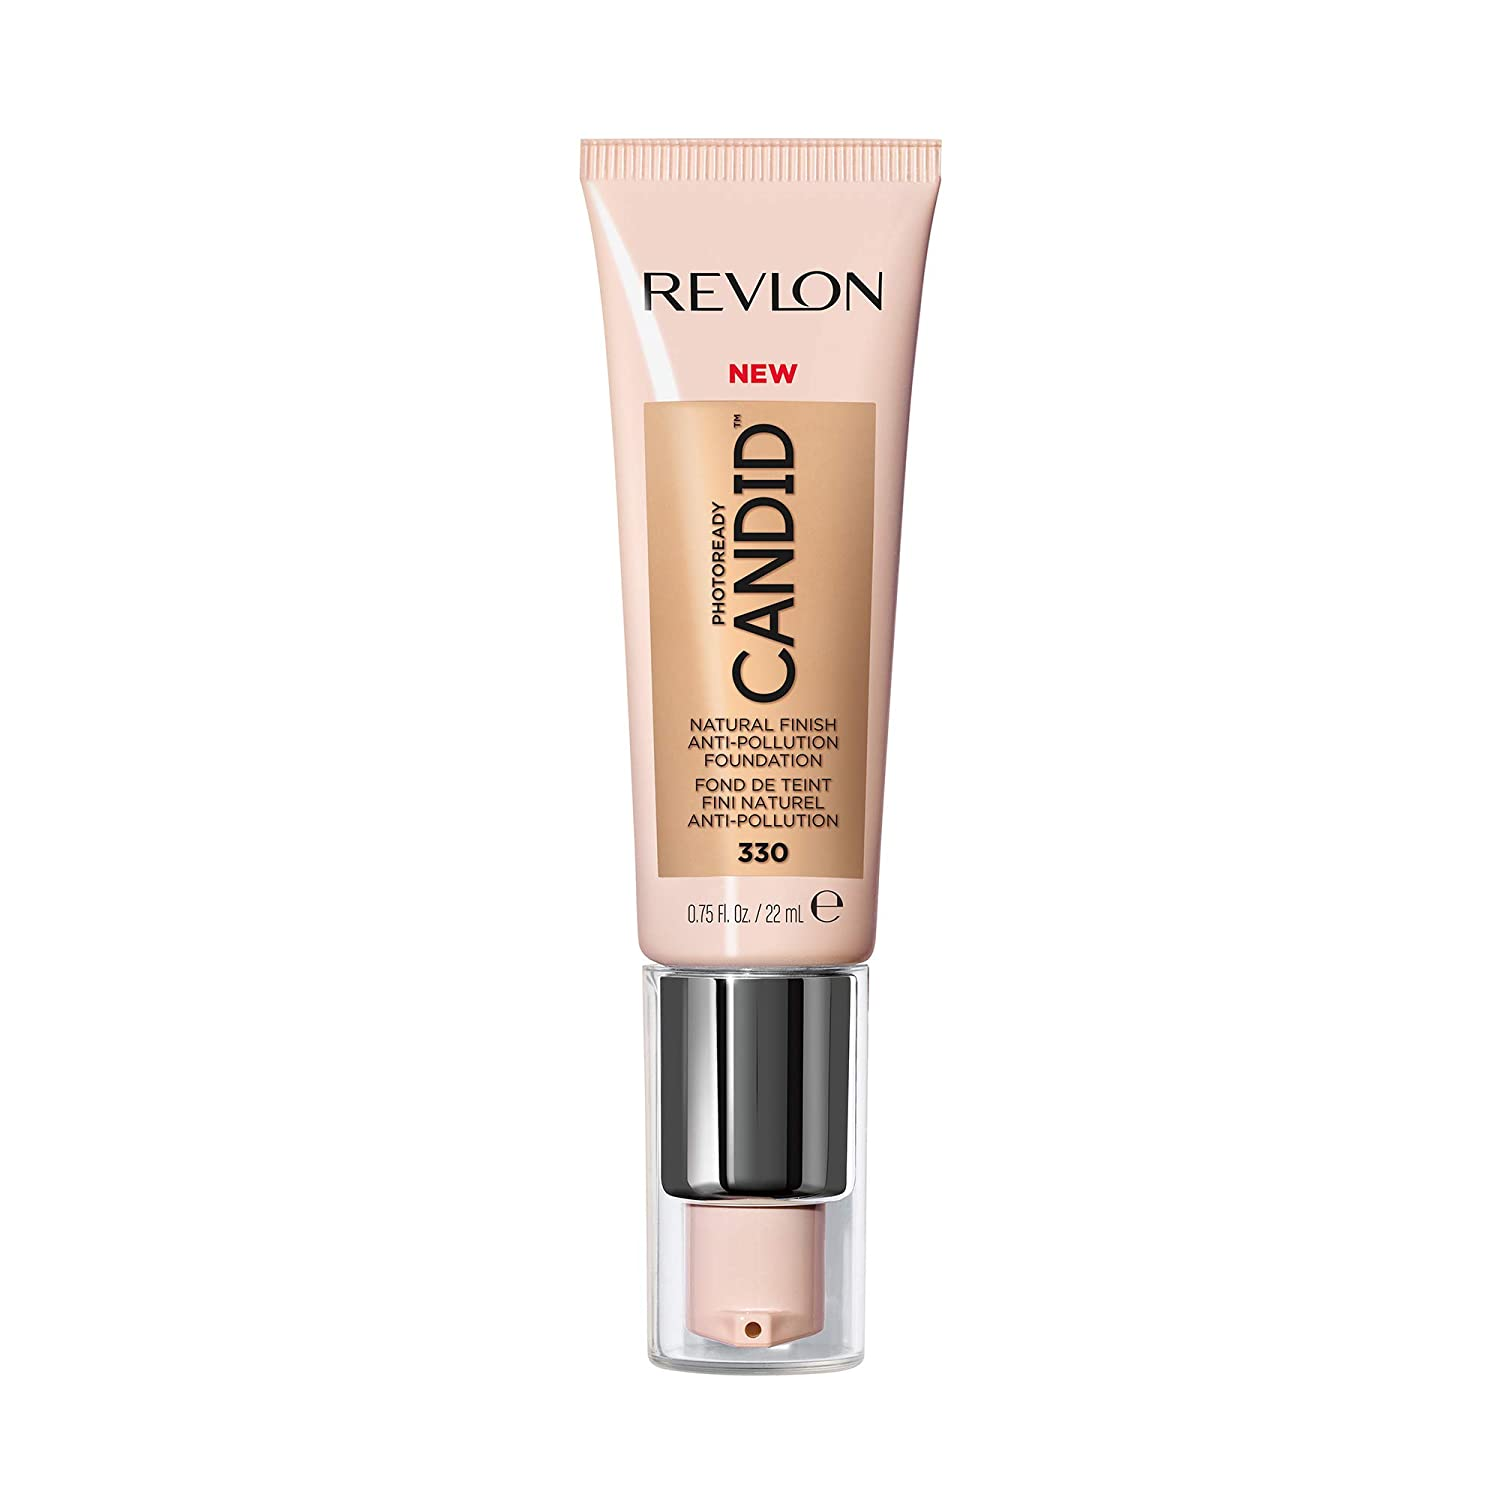 Revlon PhotoReady Candid Natural Finish Foundation, with Anti-Pollution, Antioxidant, Anti-Blue Light Ingredients, without Parabens, Pthalates and Fragrances; Light Honey.75 Fluid Oz